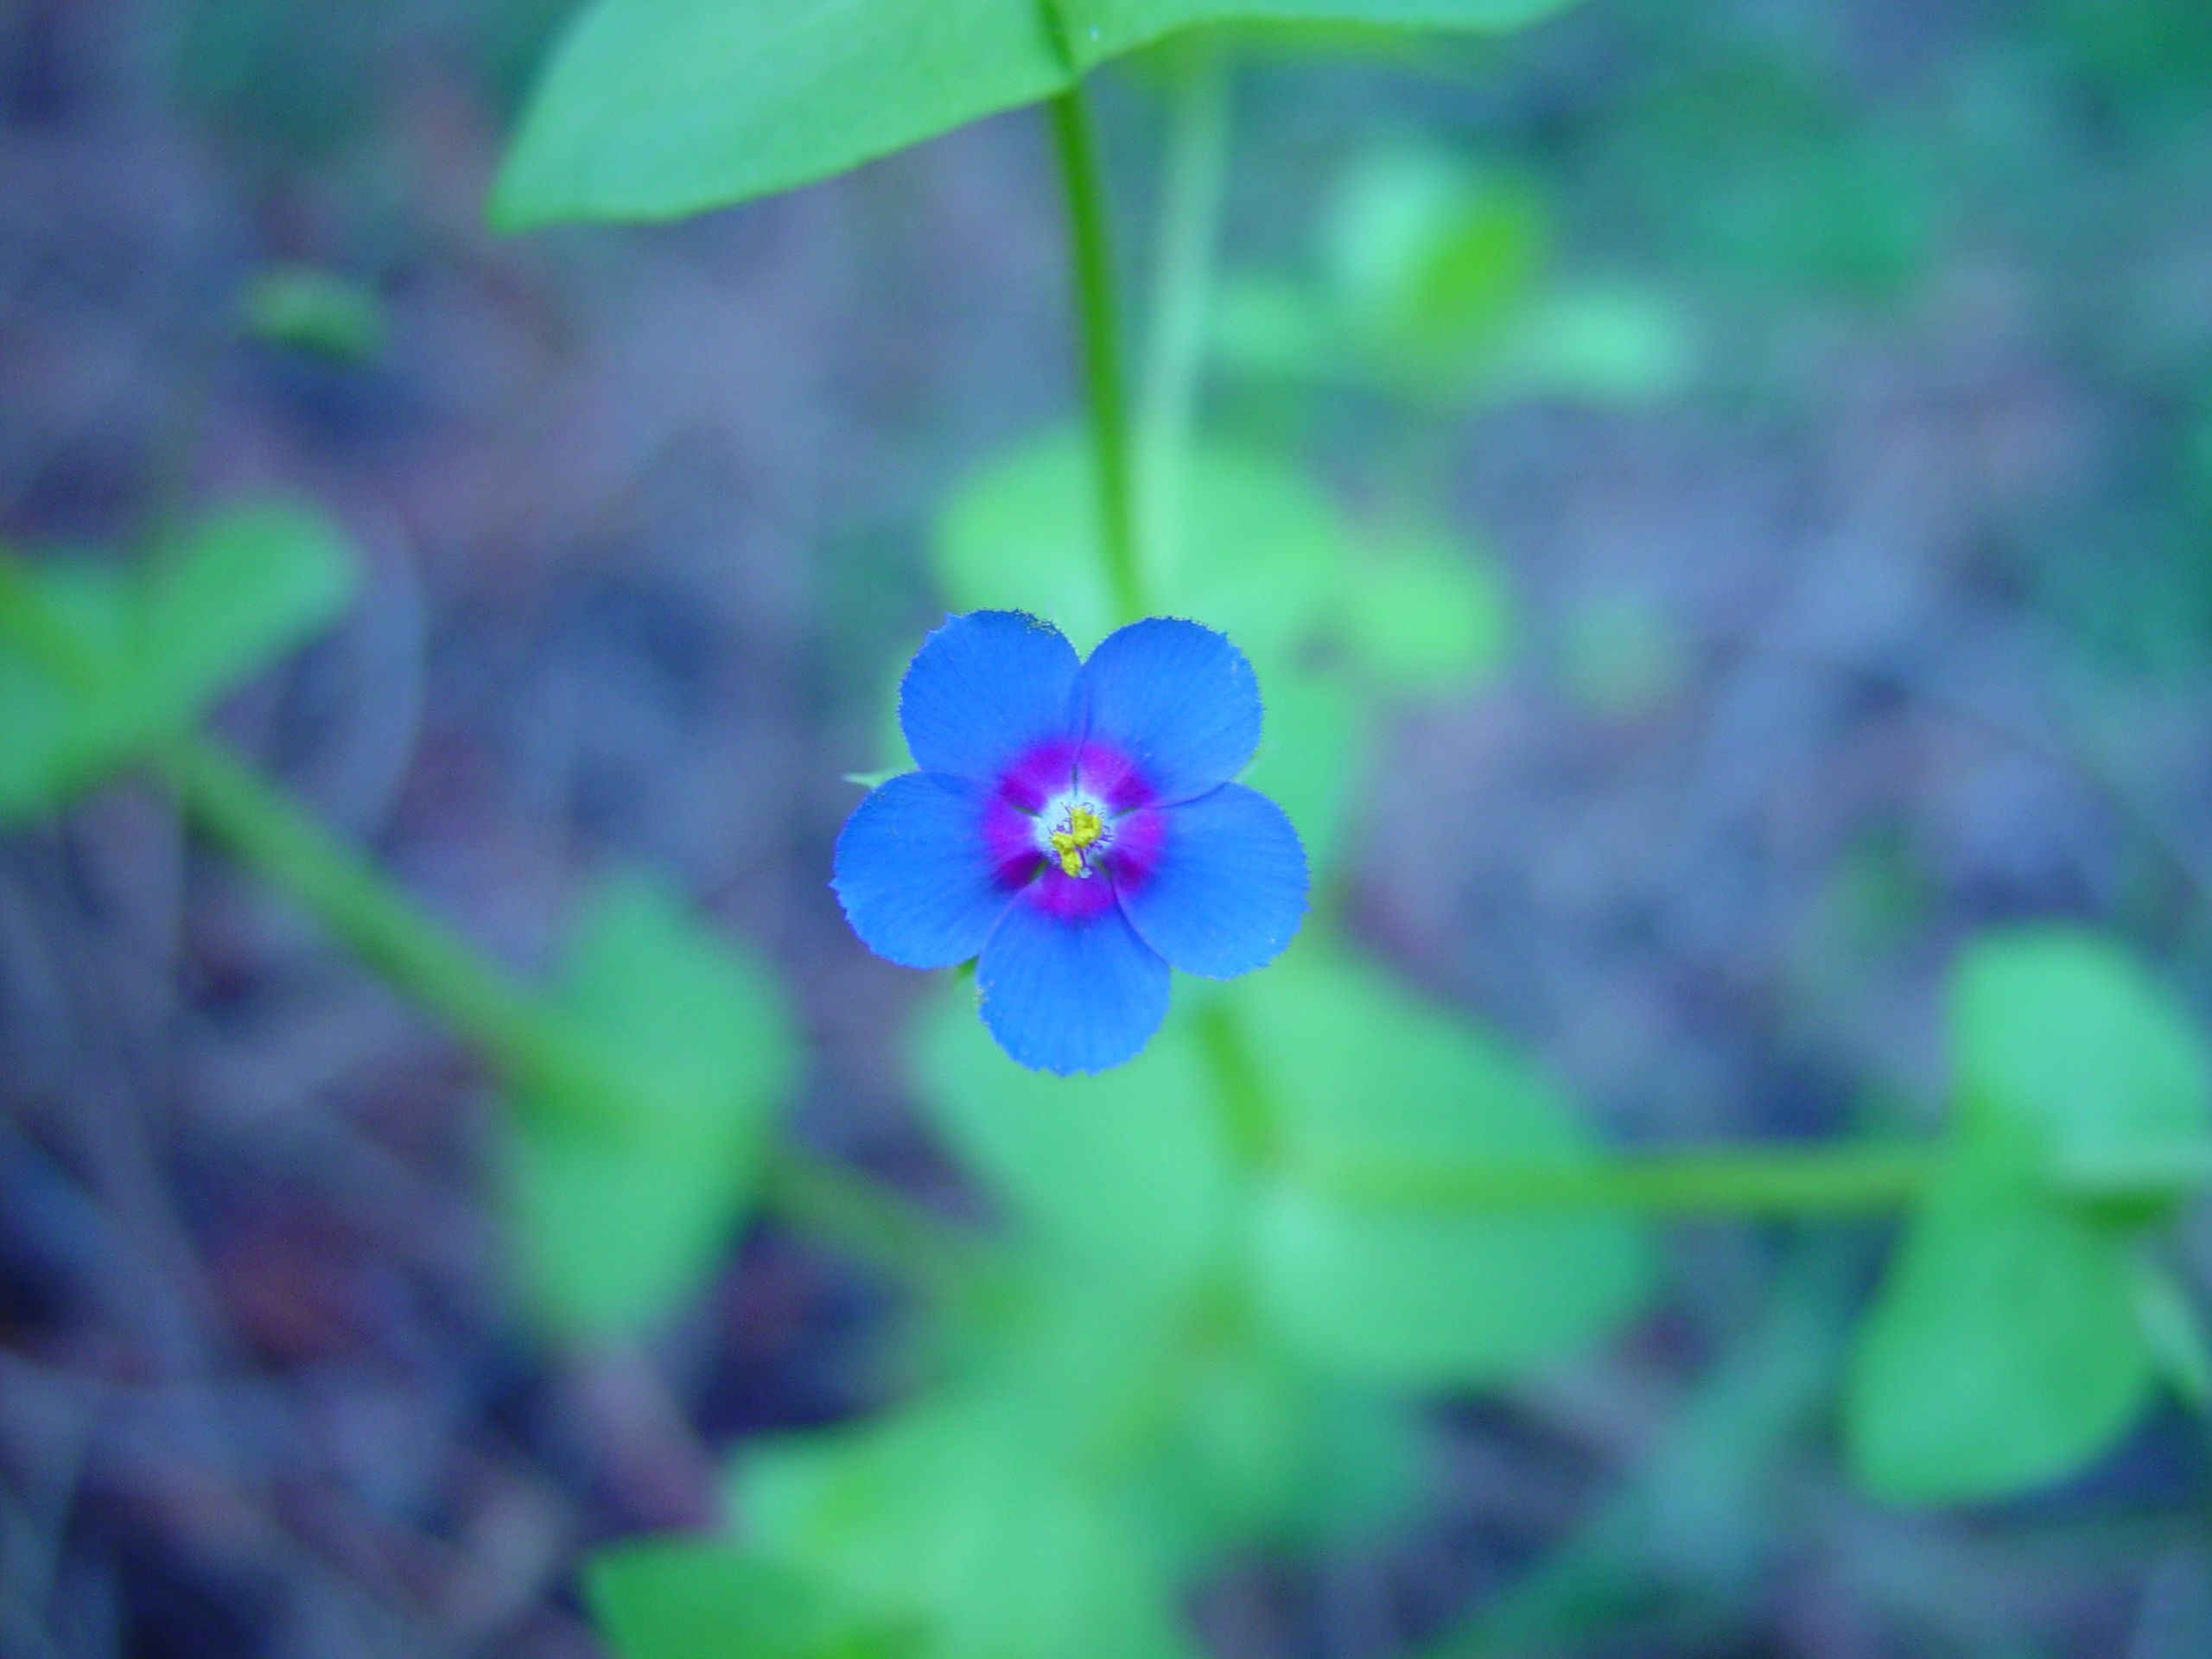 Small Blue Flower Jpg 2560 1920 Blue Flower Names Flowers Names And Pictures Blue Flowers